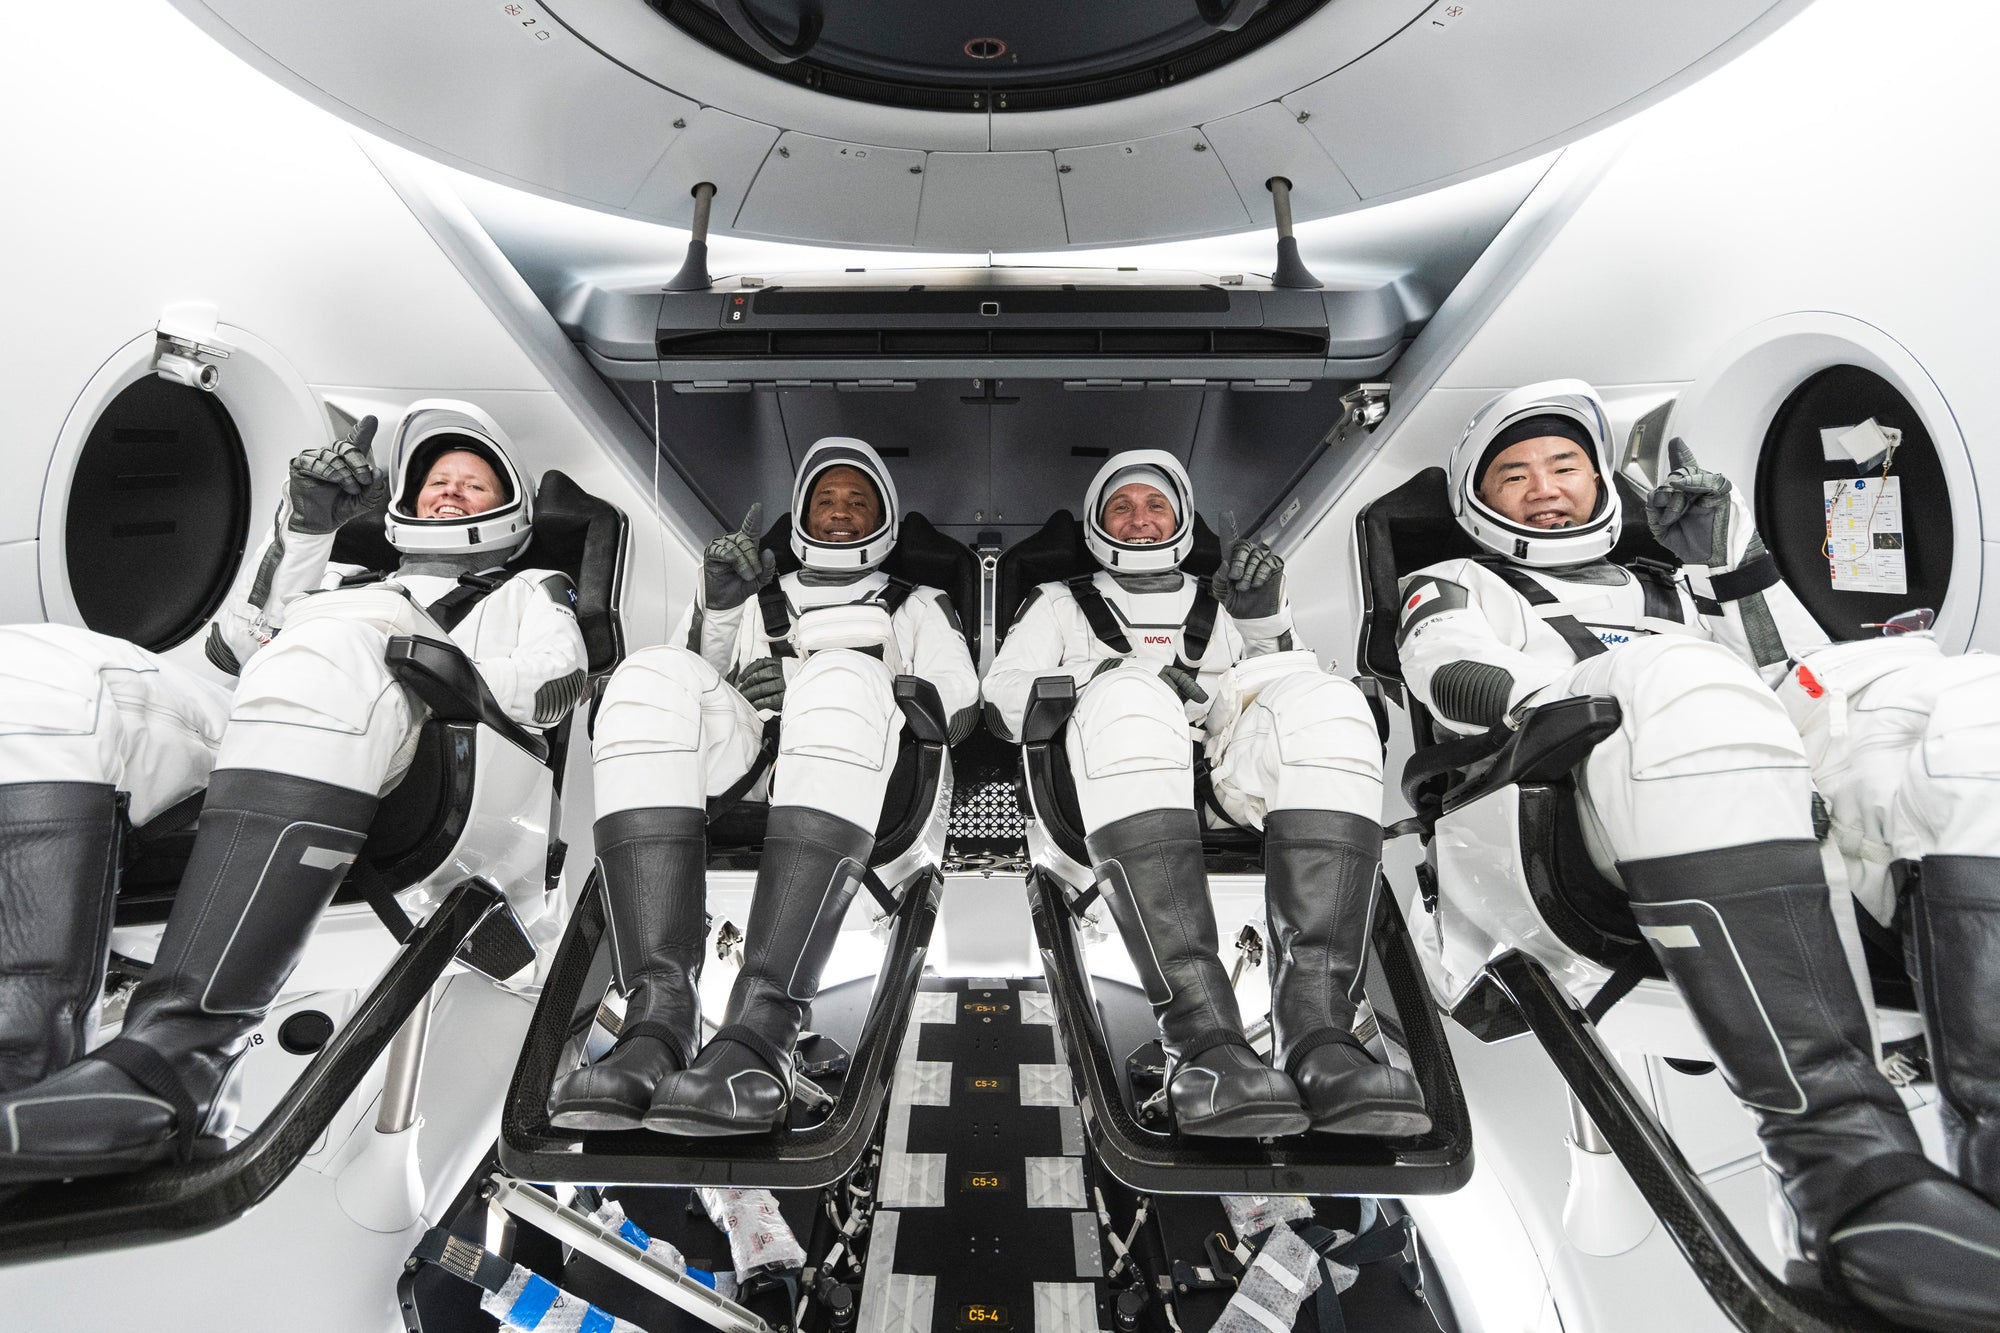 NASA sets date to launch four astronauts aboard SpaceX Crew Dragon